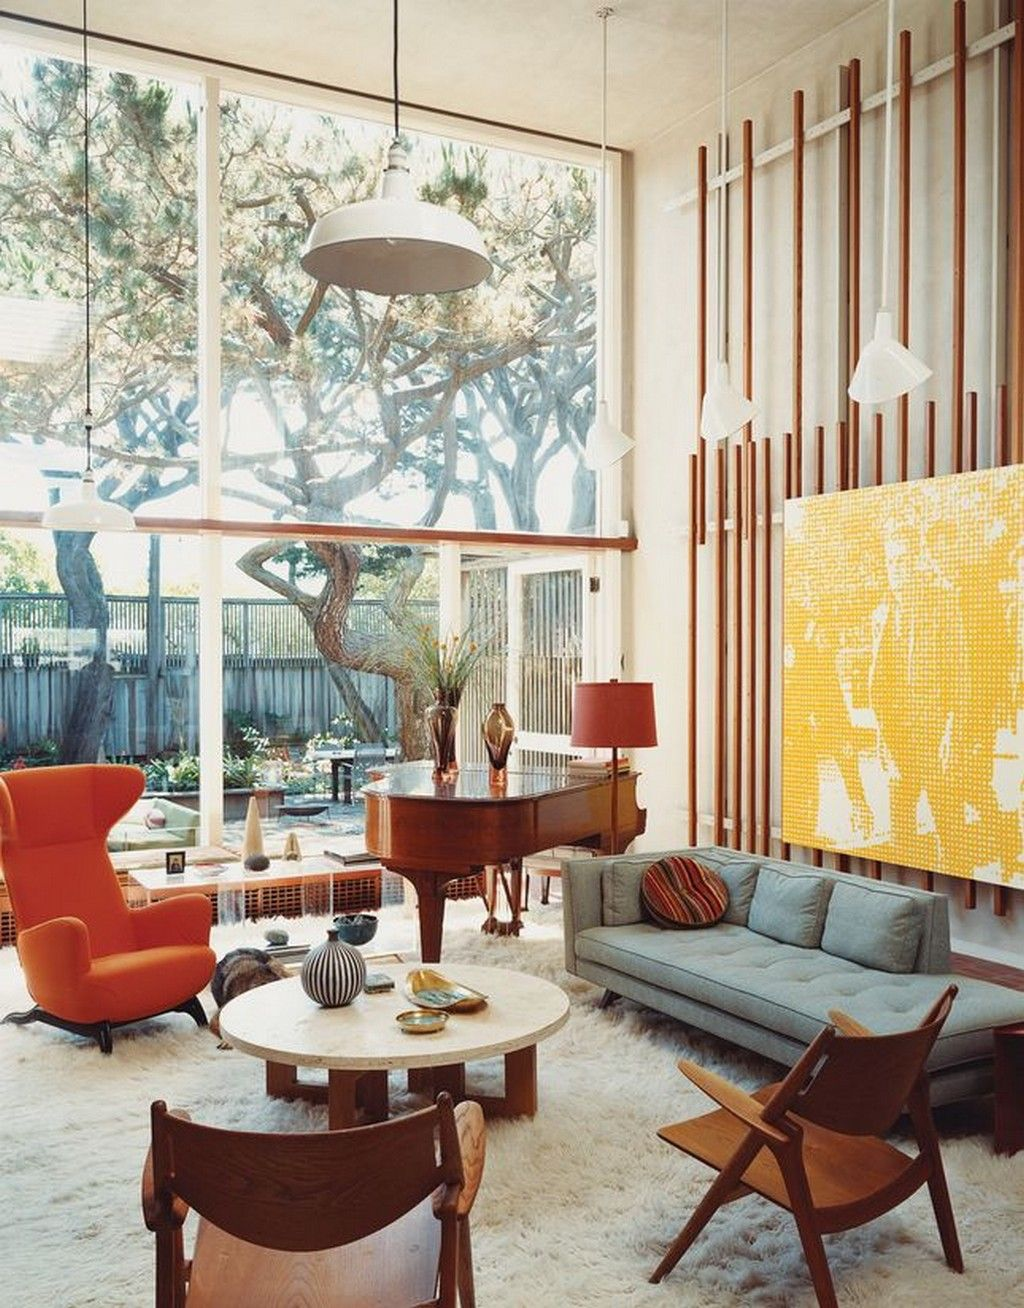 Living Room Design Styles Custom Living Room 60S Retro Interior Design Style With Small Round Design Inspiration